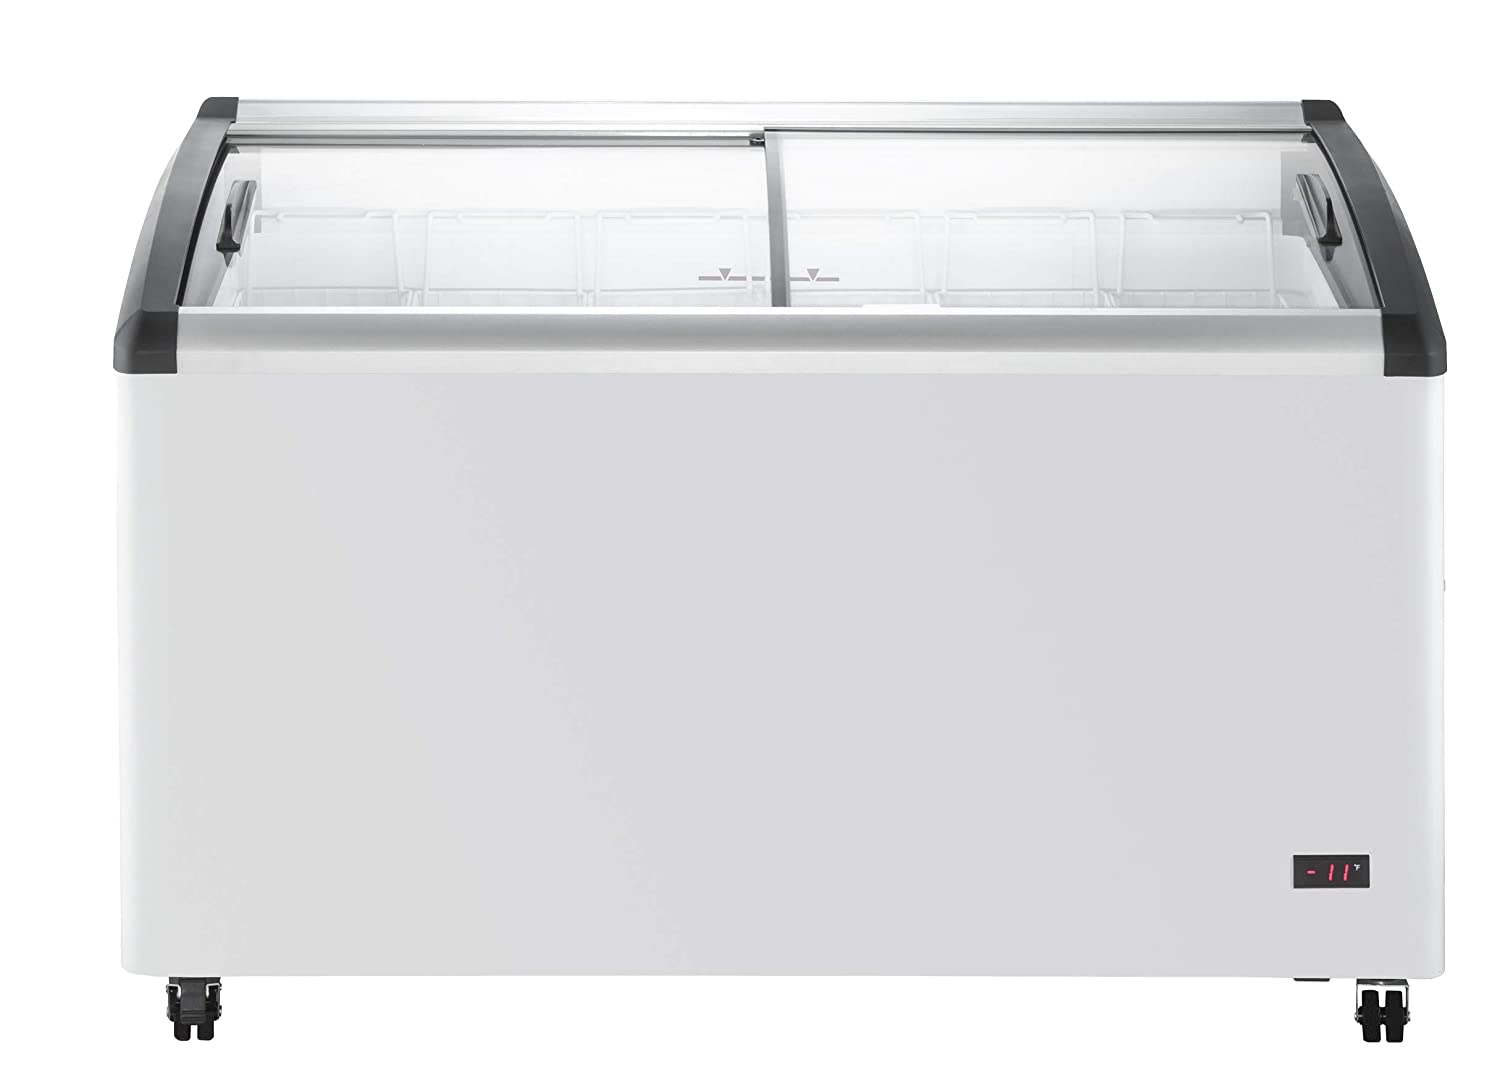 Chef's Exclusive Commercial Mobile Ice Cream Display Chest Freezer Curved Sliding Glass Lids Frost Free Sub Zero with 6 Wire Baskets, 53.2 Inch Wide, White 61booJD5r2BL._SL1500_